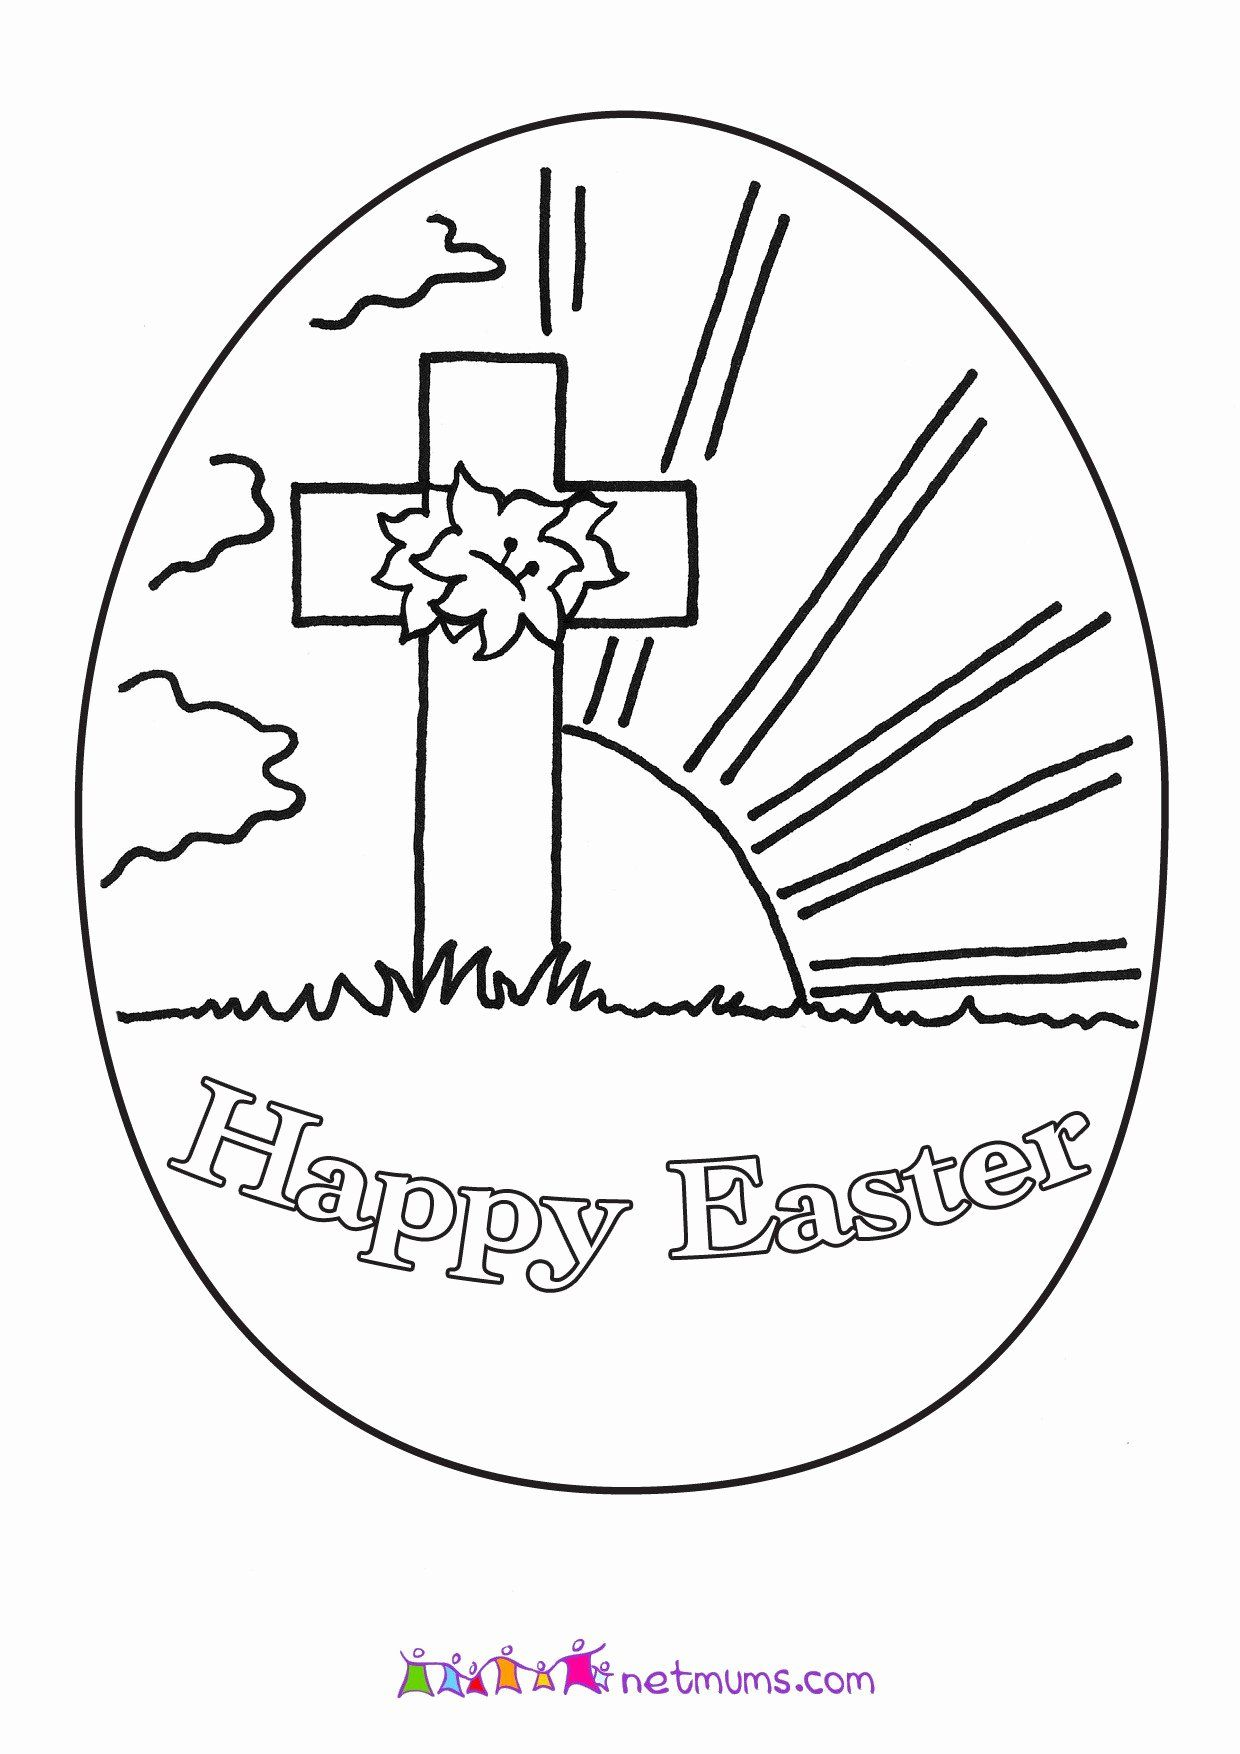 Happy Easter Zentangle Coloring Page Easter Coloring Pages